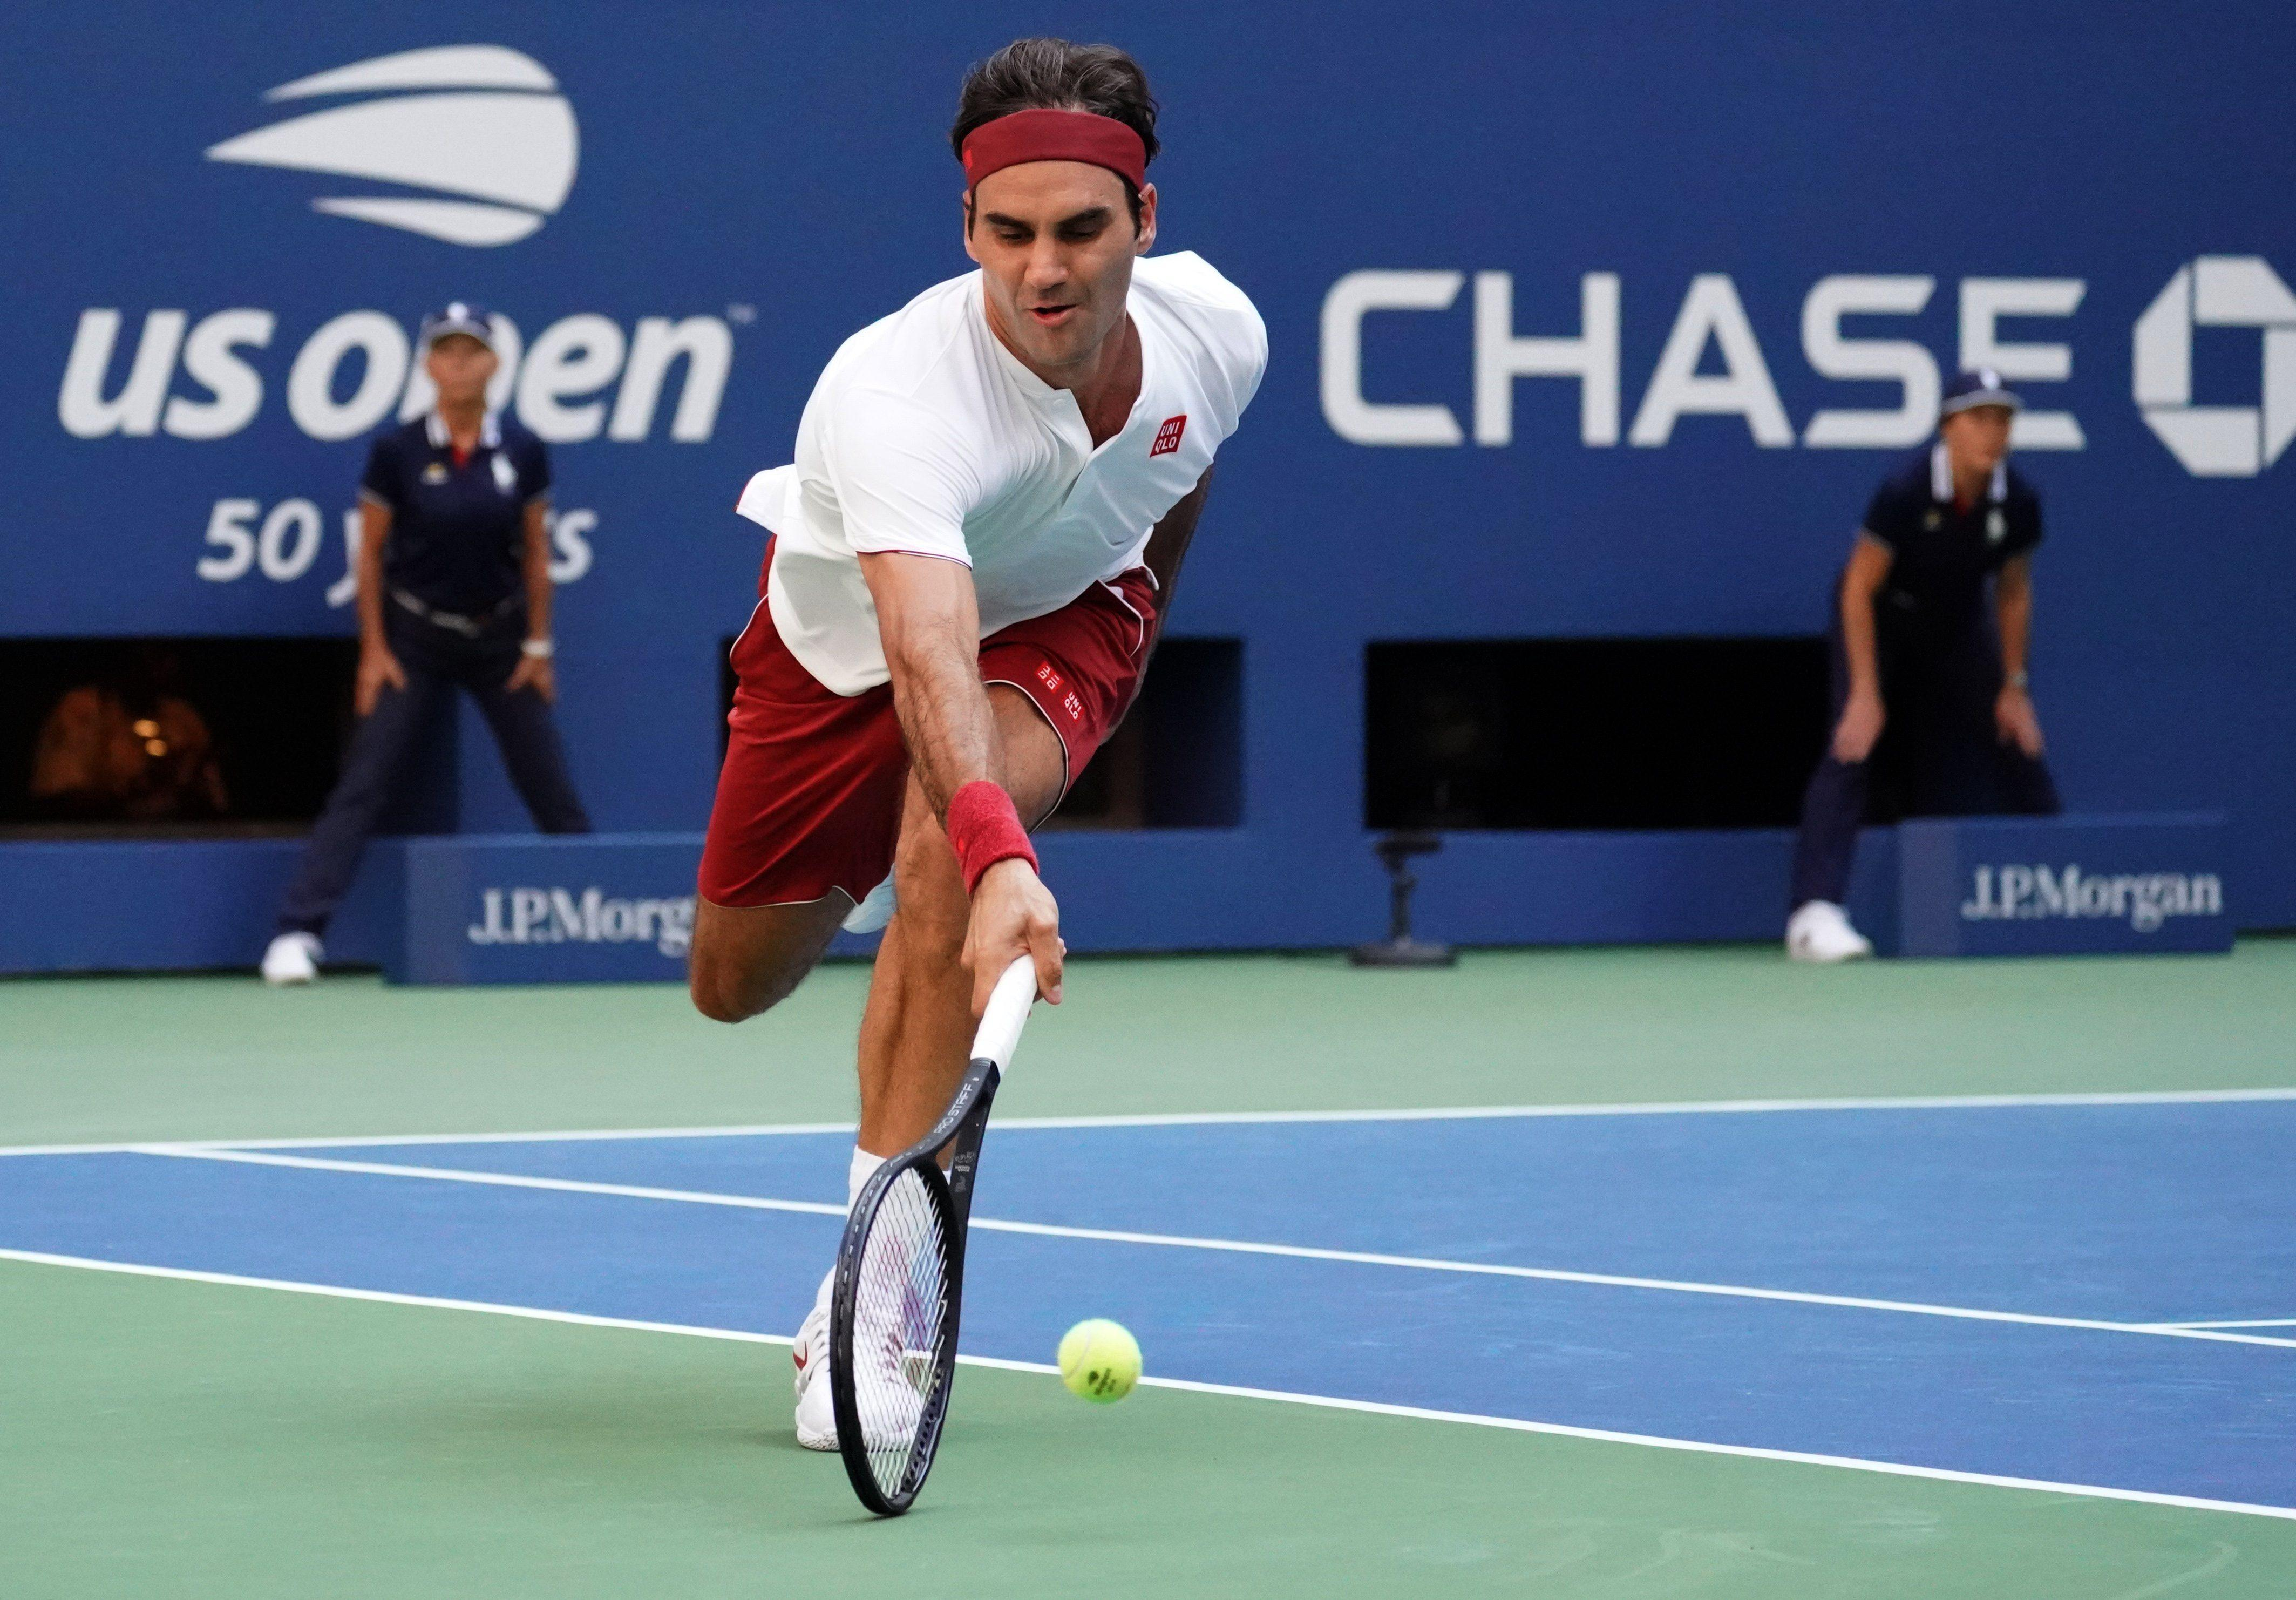 Federer got to the shot that was mere inches off the ground